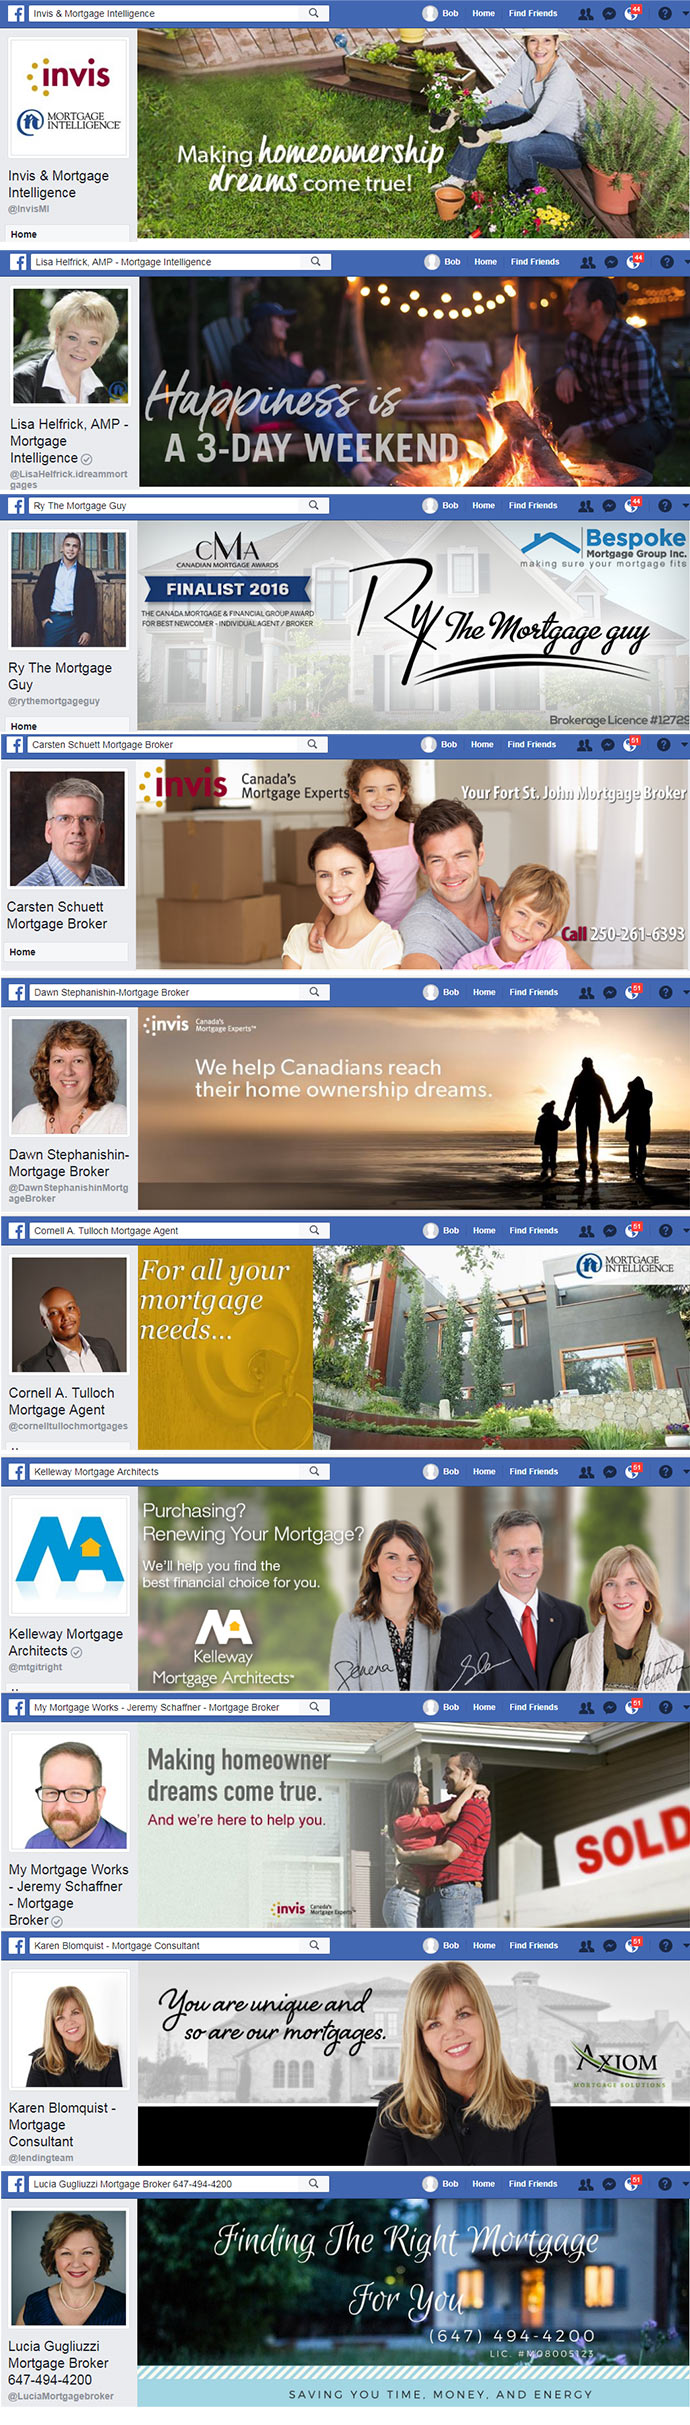 Facebook cover images for Mortgage Brokers